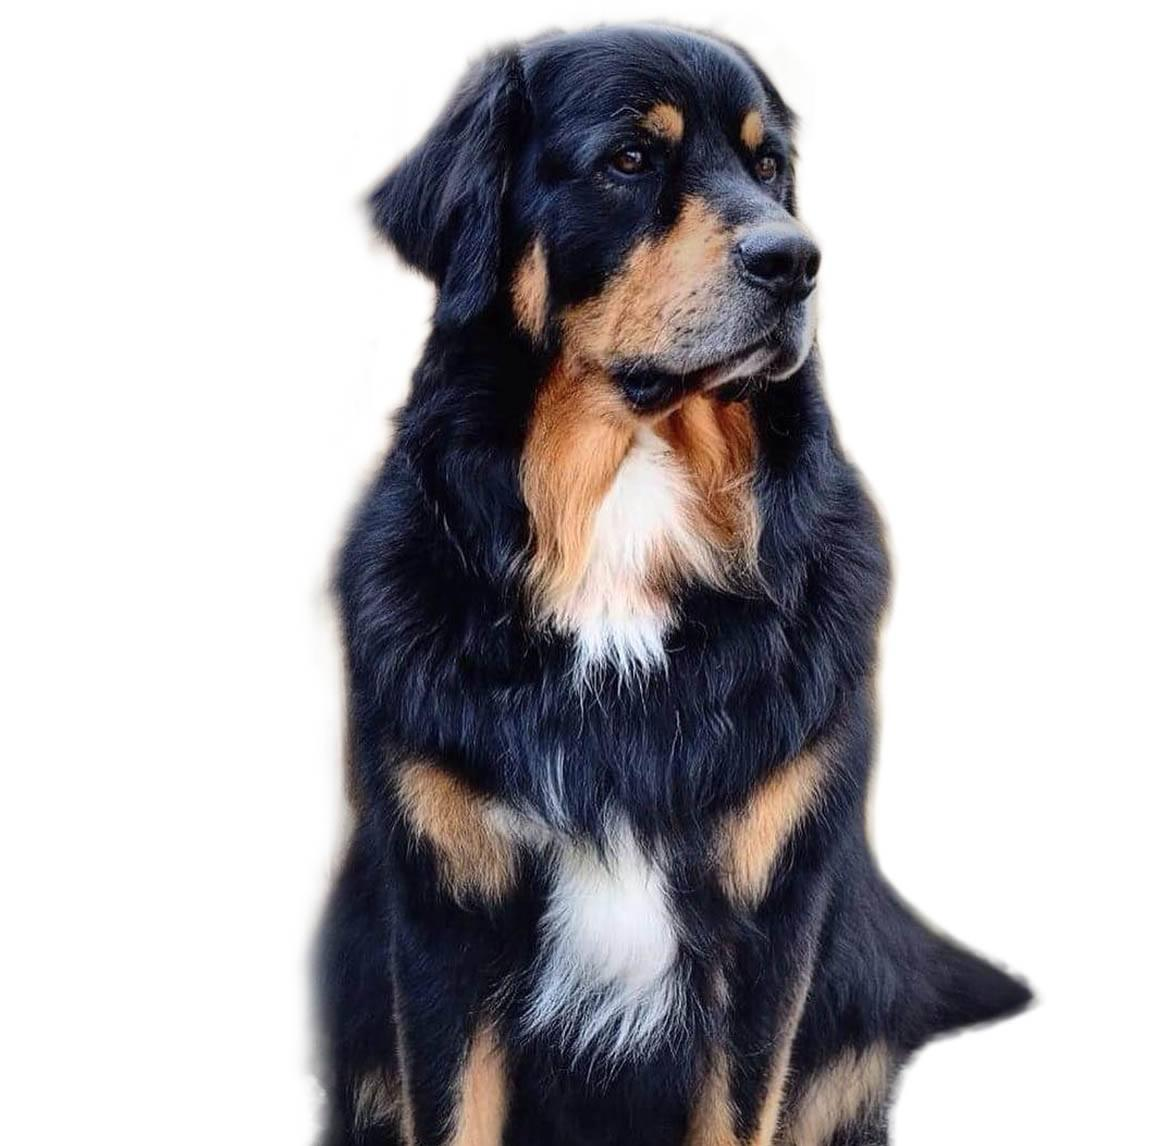 Golden Mountain Dog Breed